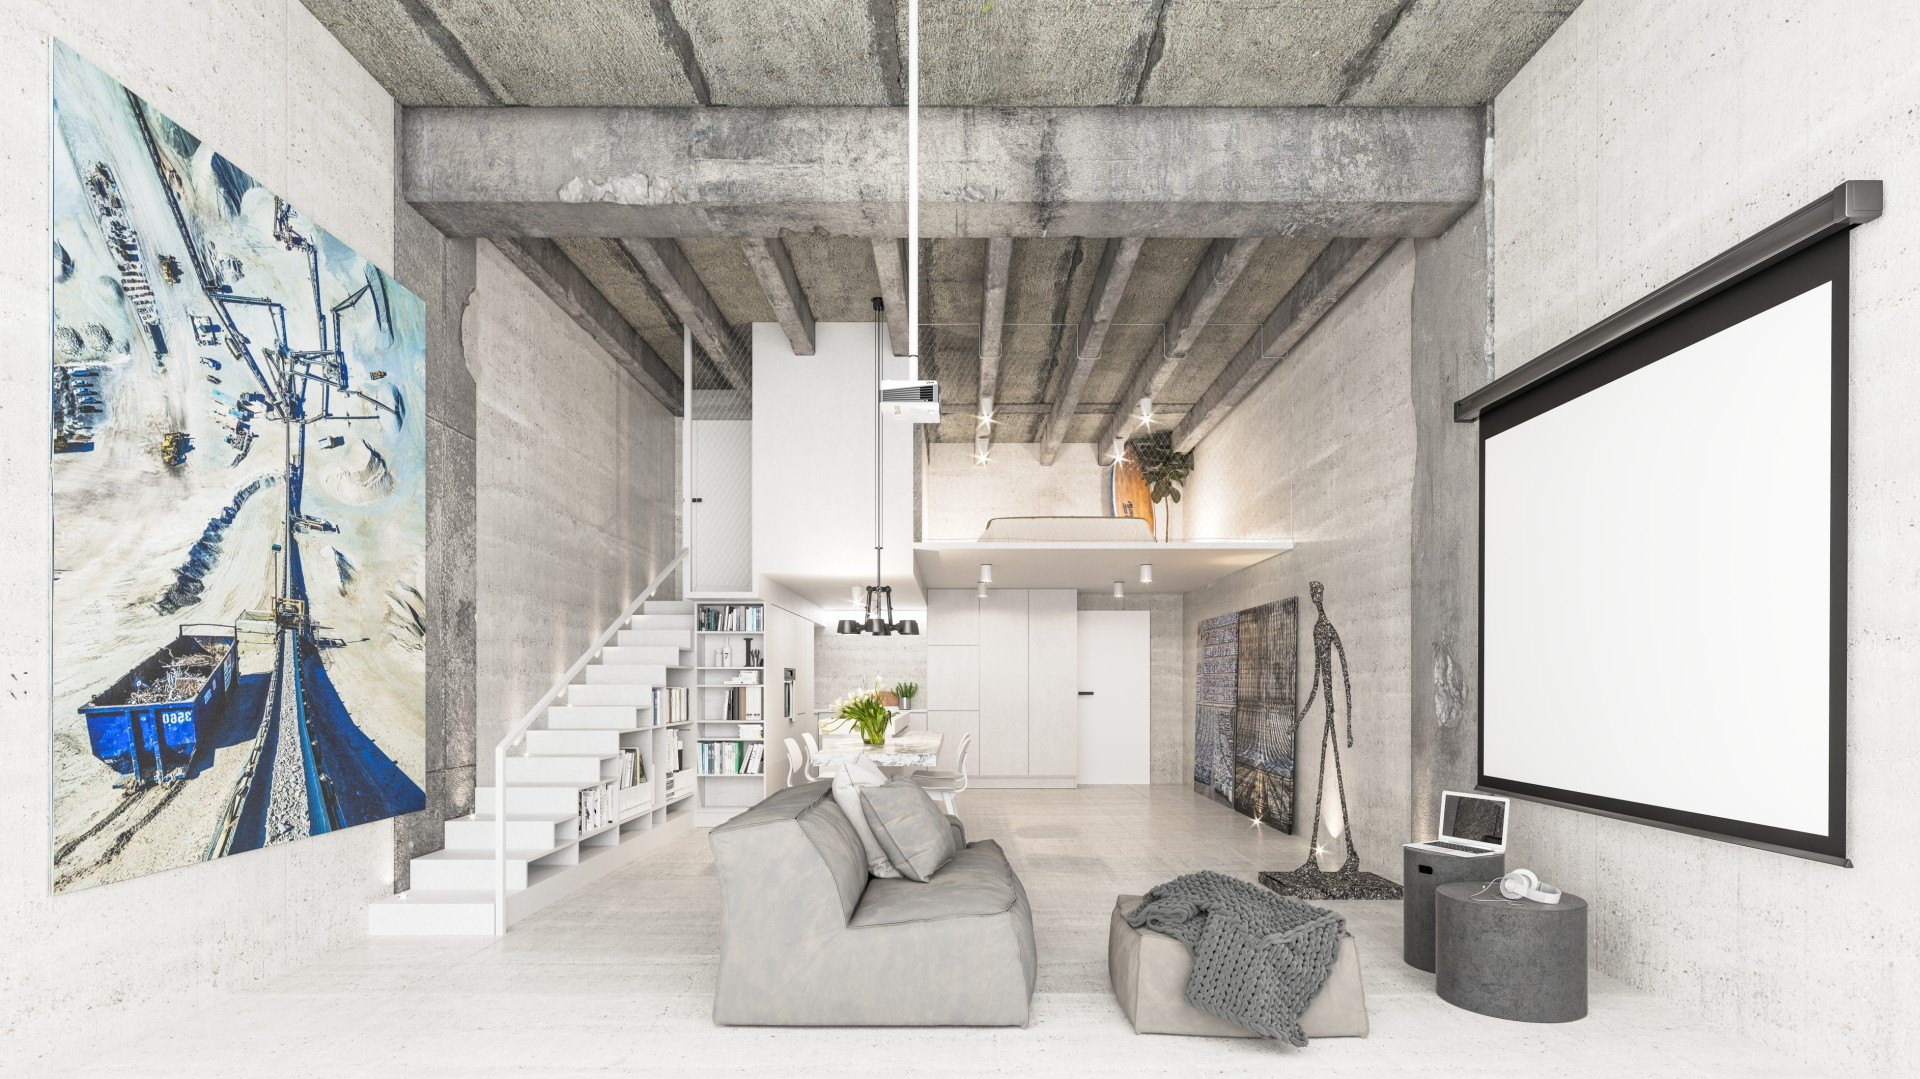 Loft interior design options available by OOOOX. Floor plan may differ to actual plan.